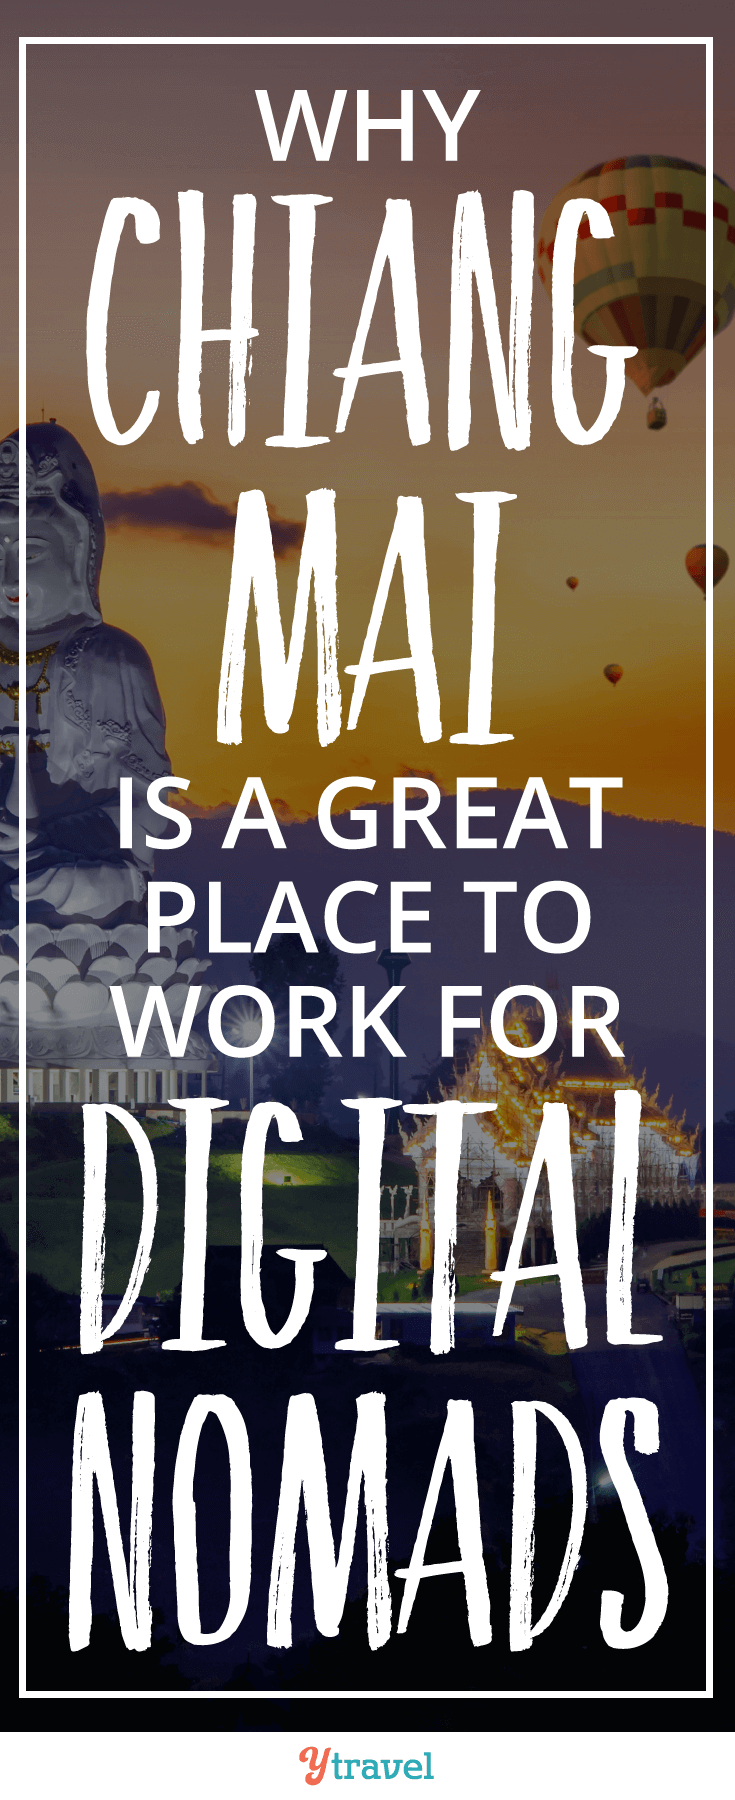 Chaing Mai, Thailand is a great place to work for digital nomads. Welcome to a less bustling place, a slower pace of life, incredible food, and mesmerizing temples.